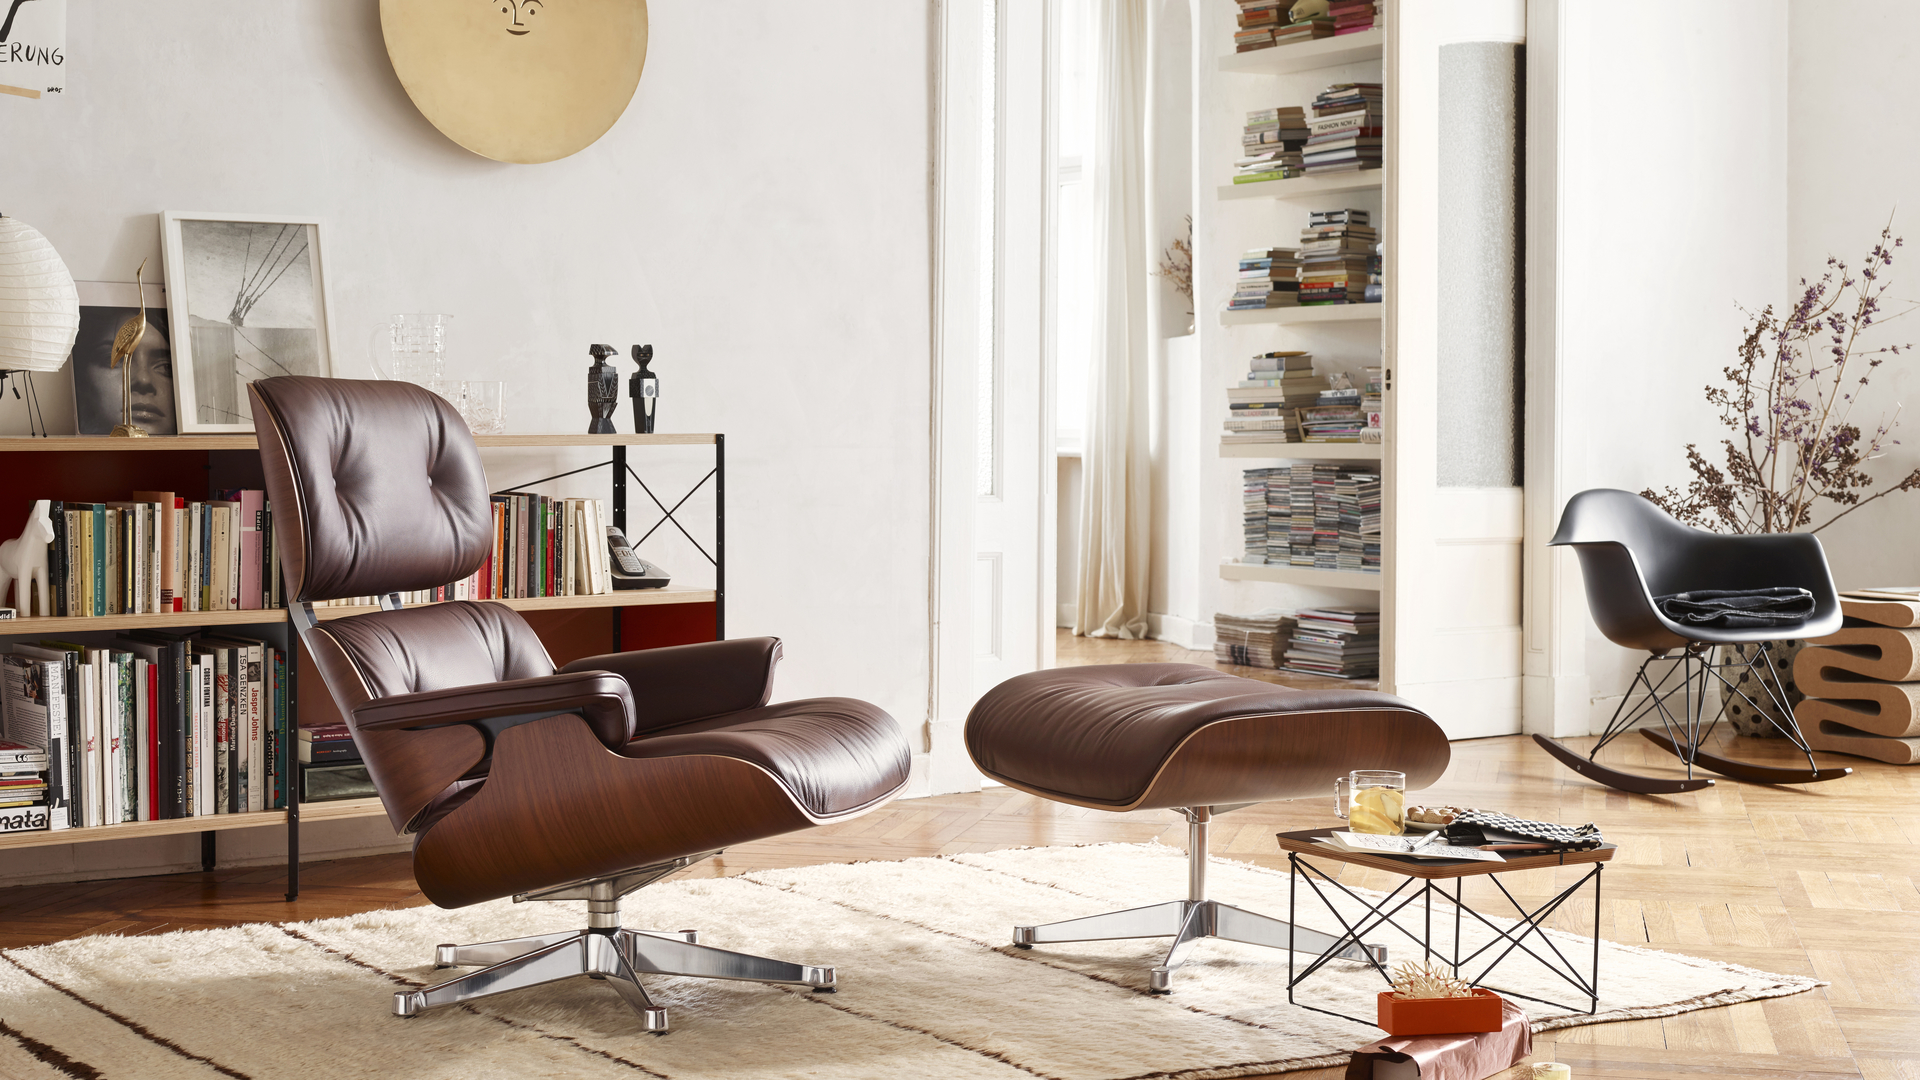 Lounge chair & Ottoman - Vitra